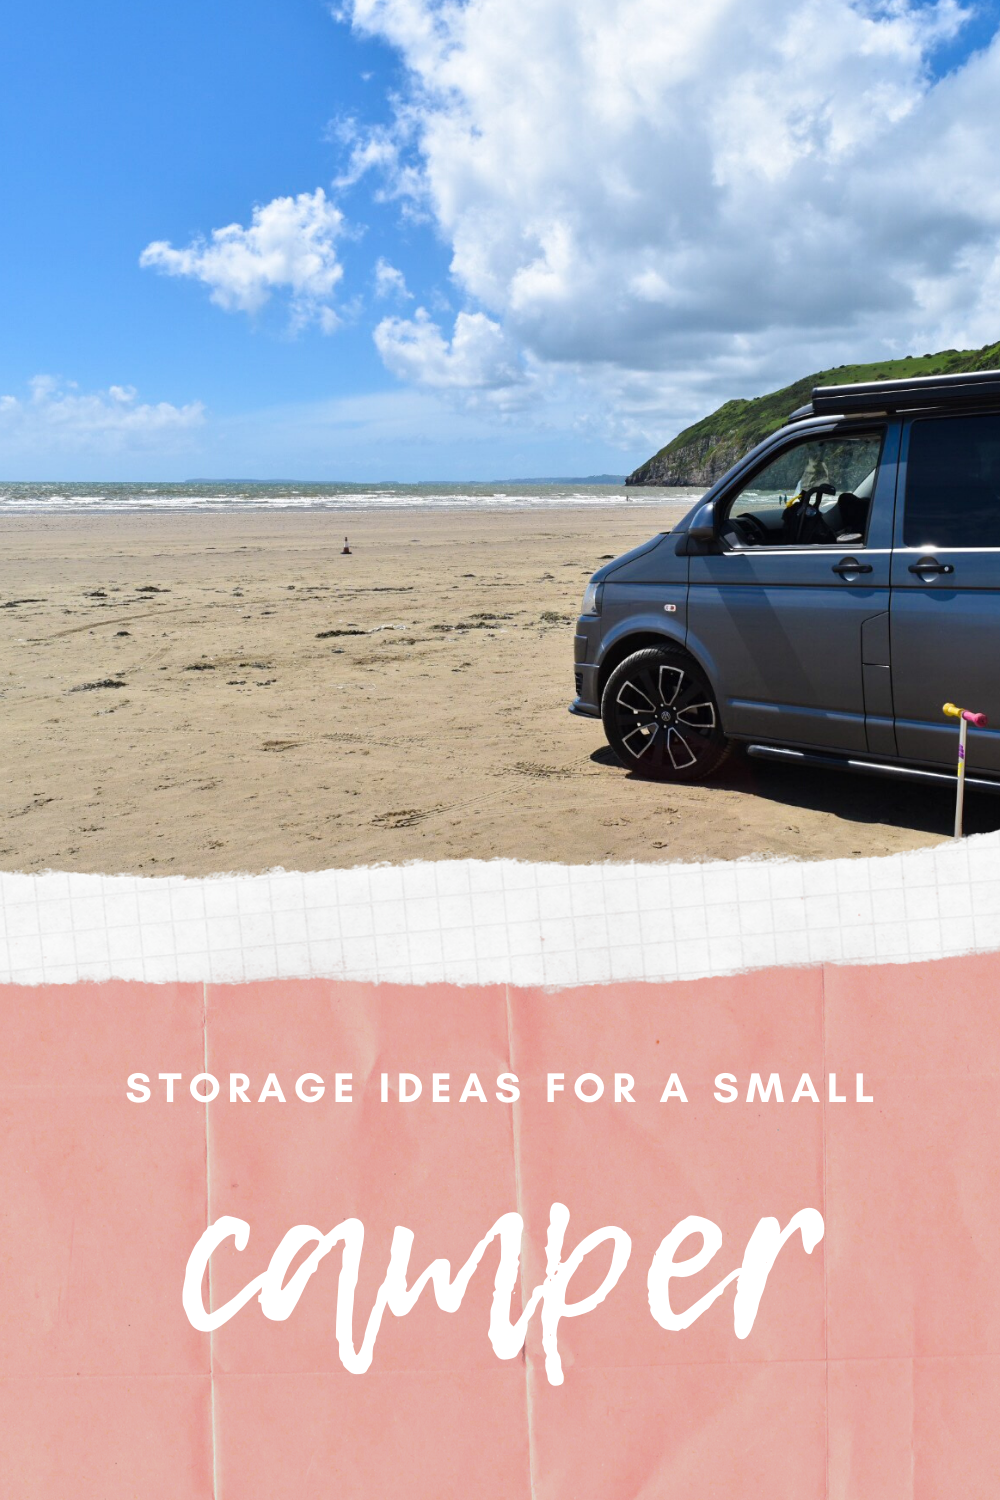 camper storage ideas for a small campervan motorhome or RV. Wardrobe storage hacks, and small storage solutions